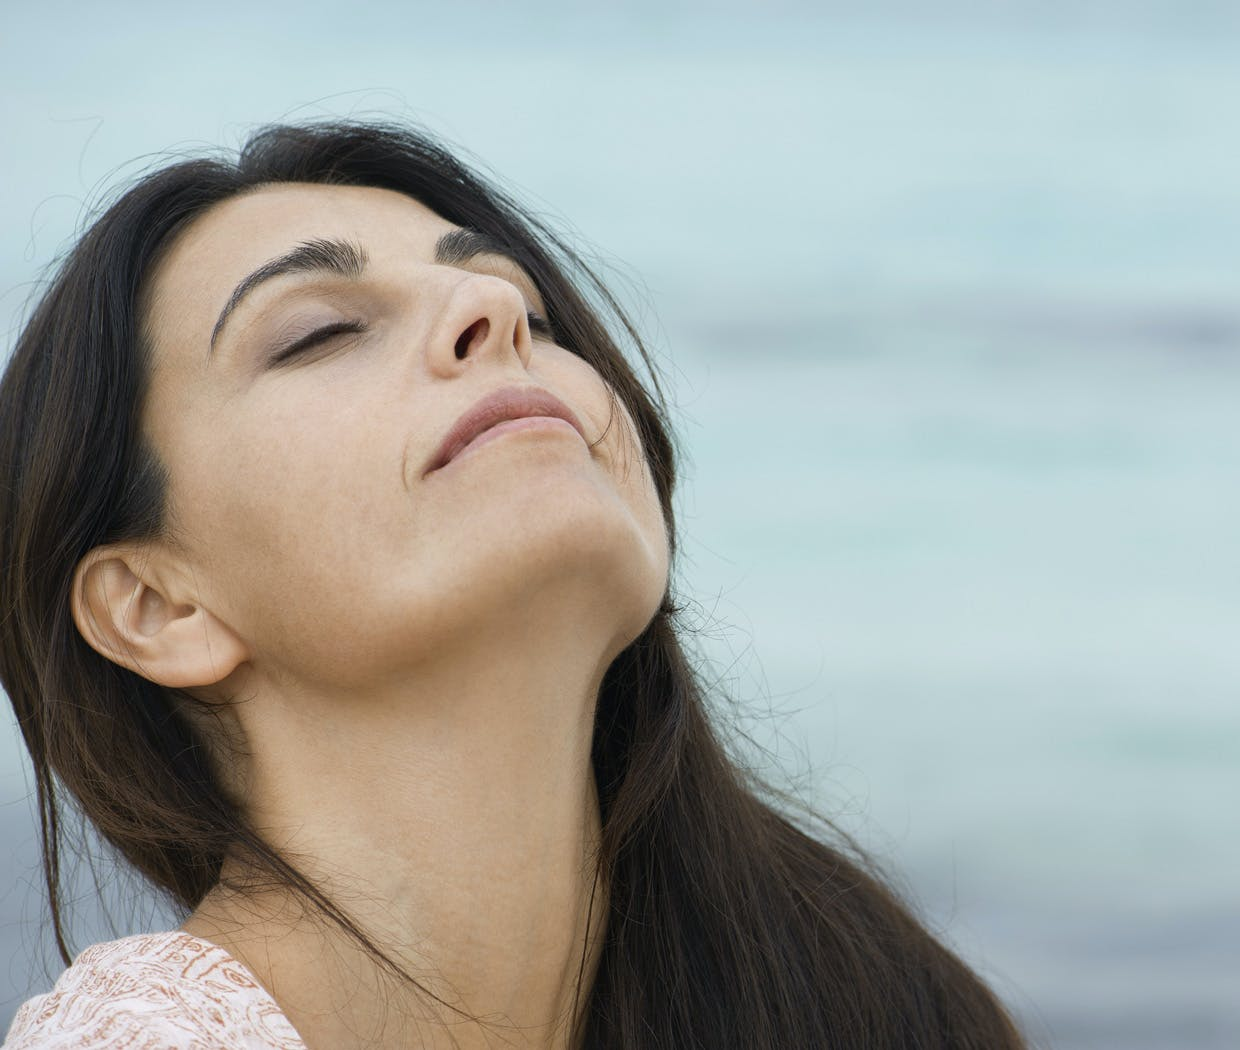 Woman with clear sinuses lifts head to breath in fresh air